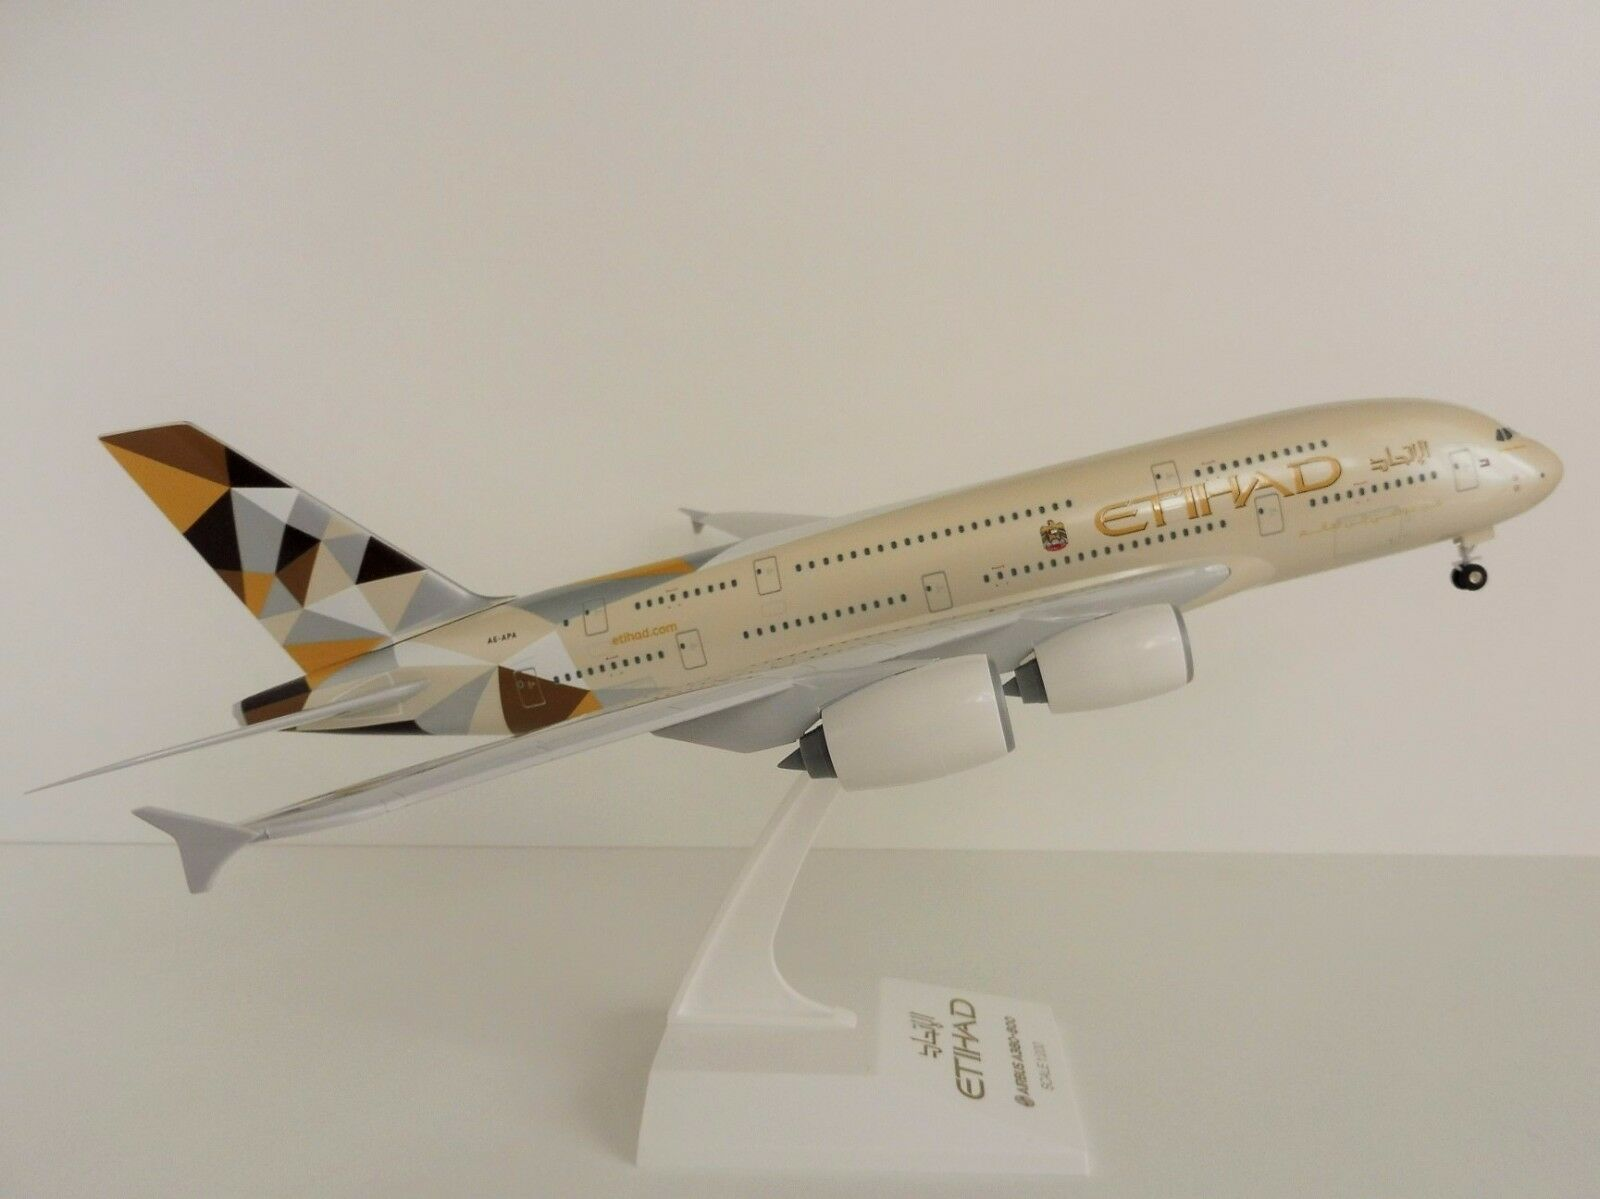 Etihad Airways Airbus a380-800 a6-apa 1 200 skr840 Skymarks Abu Dhabi NEW COLOUR